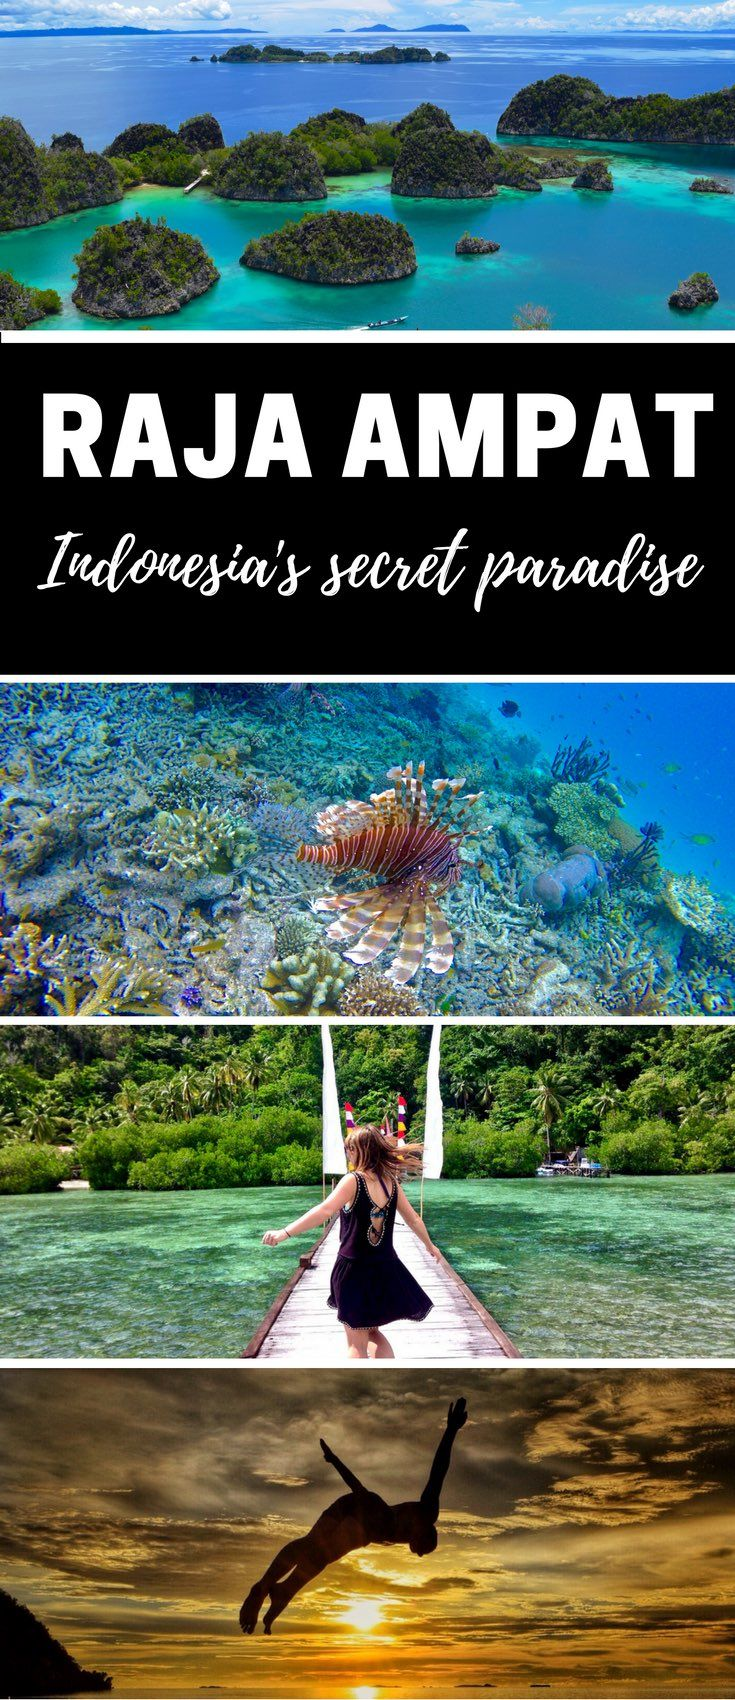 A travel guide to visiting Indonesia's secret paradise, Raja Ampat in West Papua